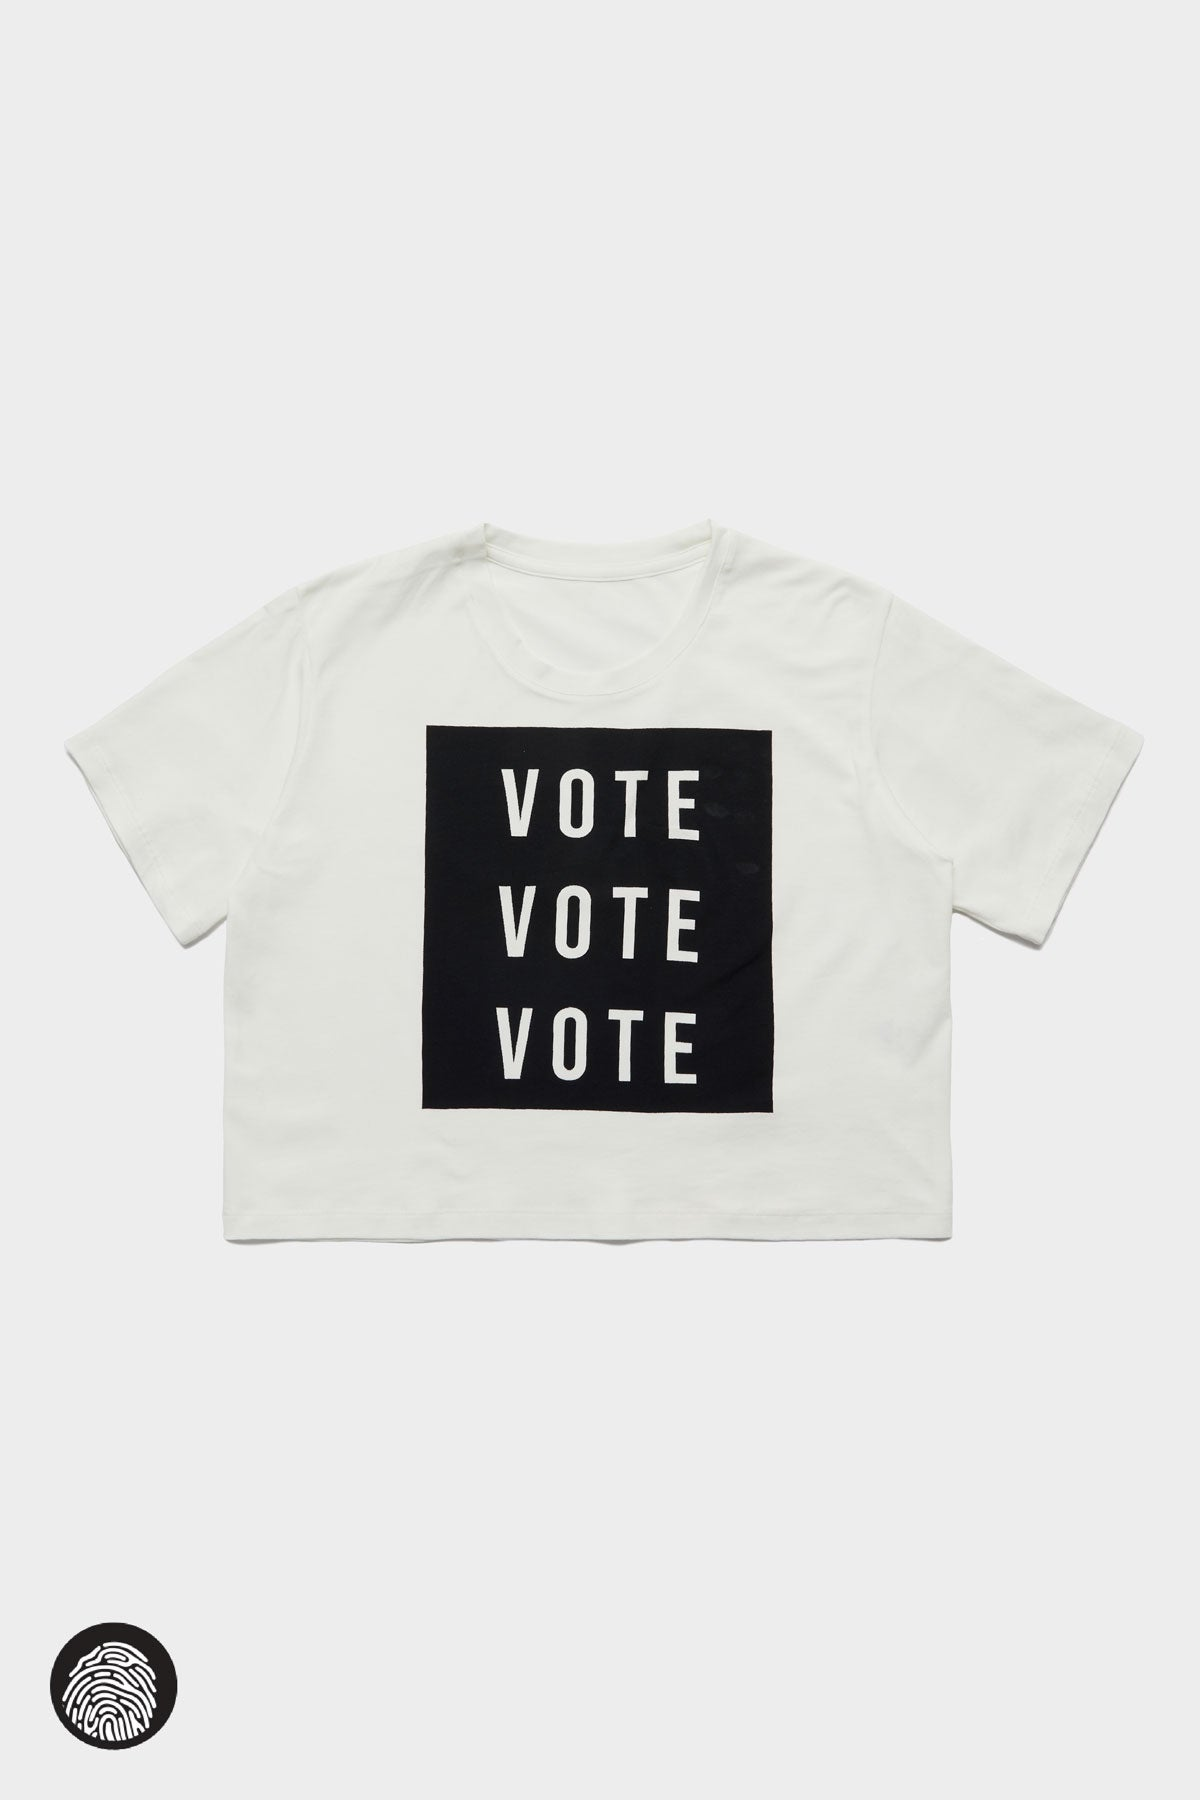 CROPPED T-SHIRT / VOTE | Megan Renee